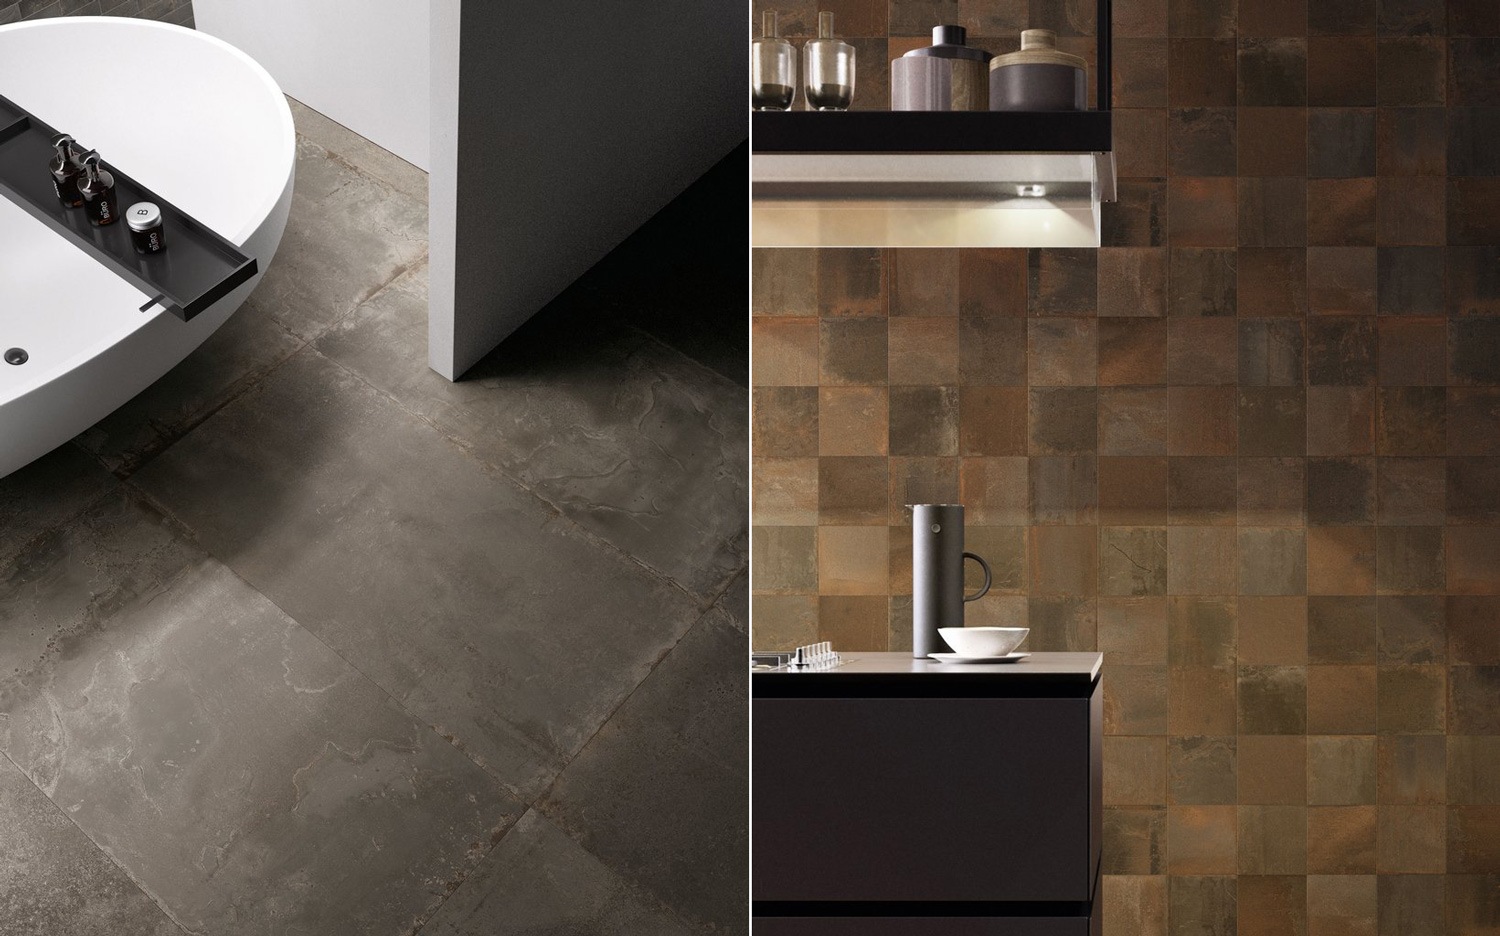 Tile trends for 2019 Ceramica Sant'Agostino - www.authenticinterior.com BLOG